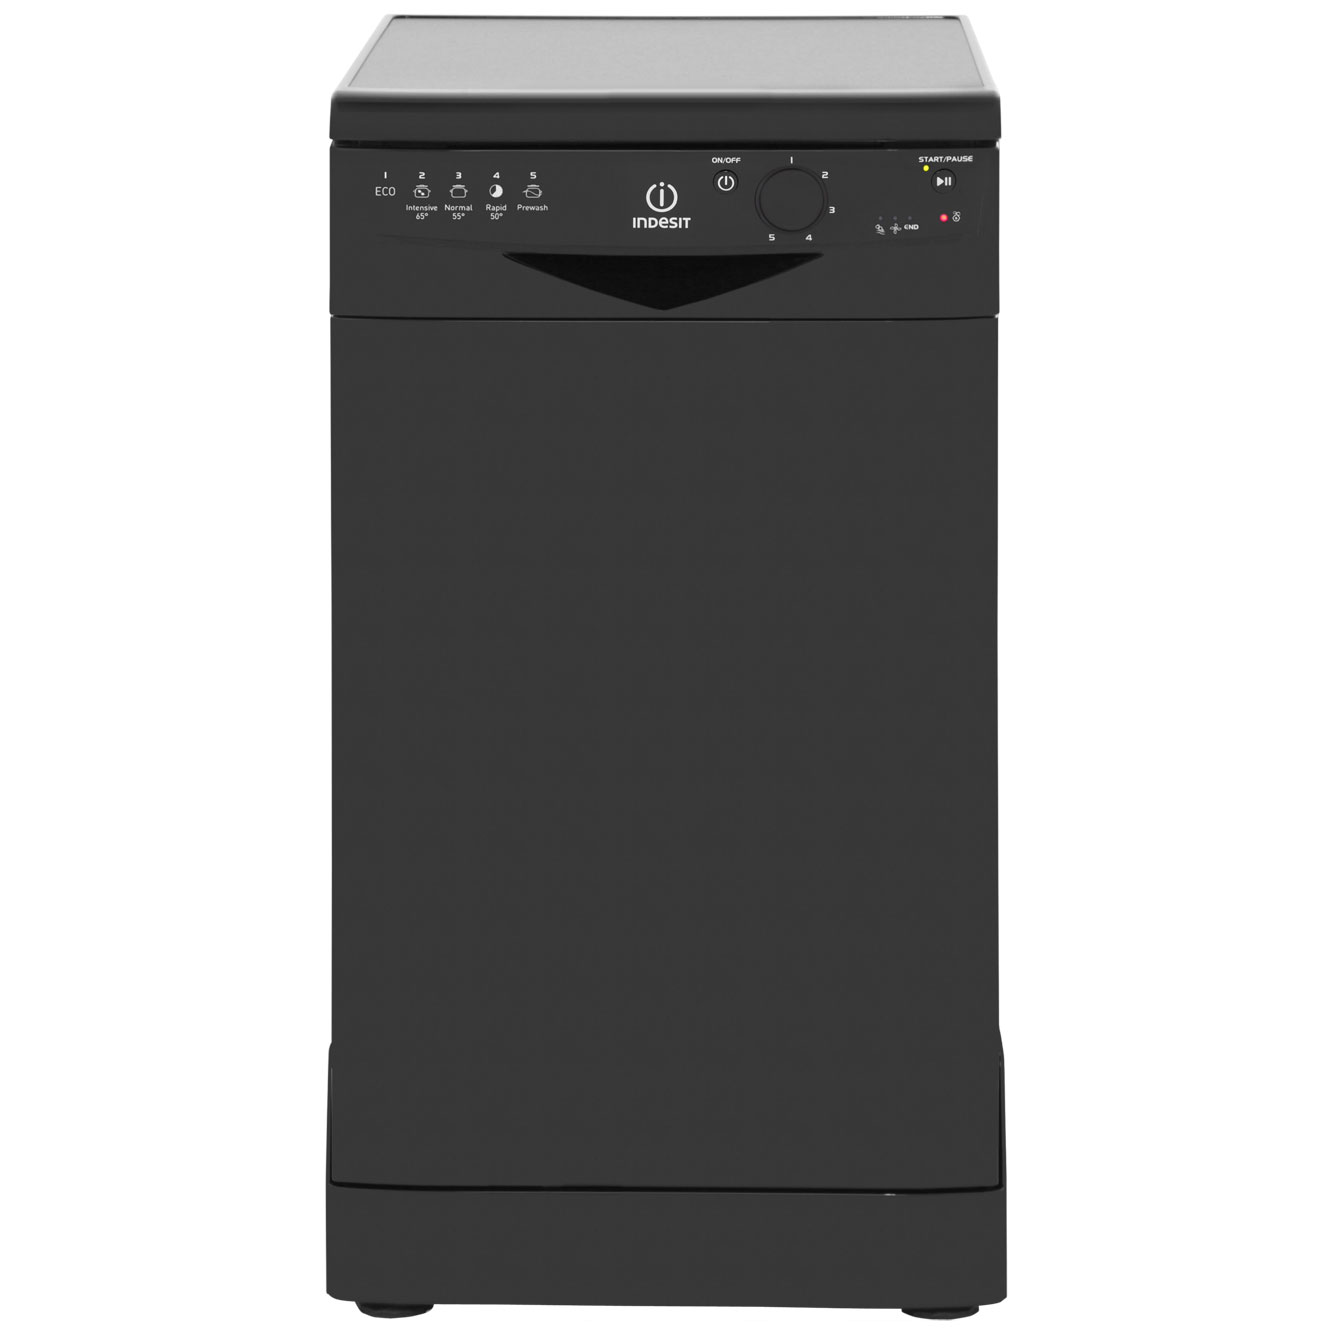 Indesit DSR15BK Free Standing Slimline Dishwasher in Black